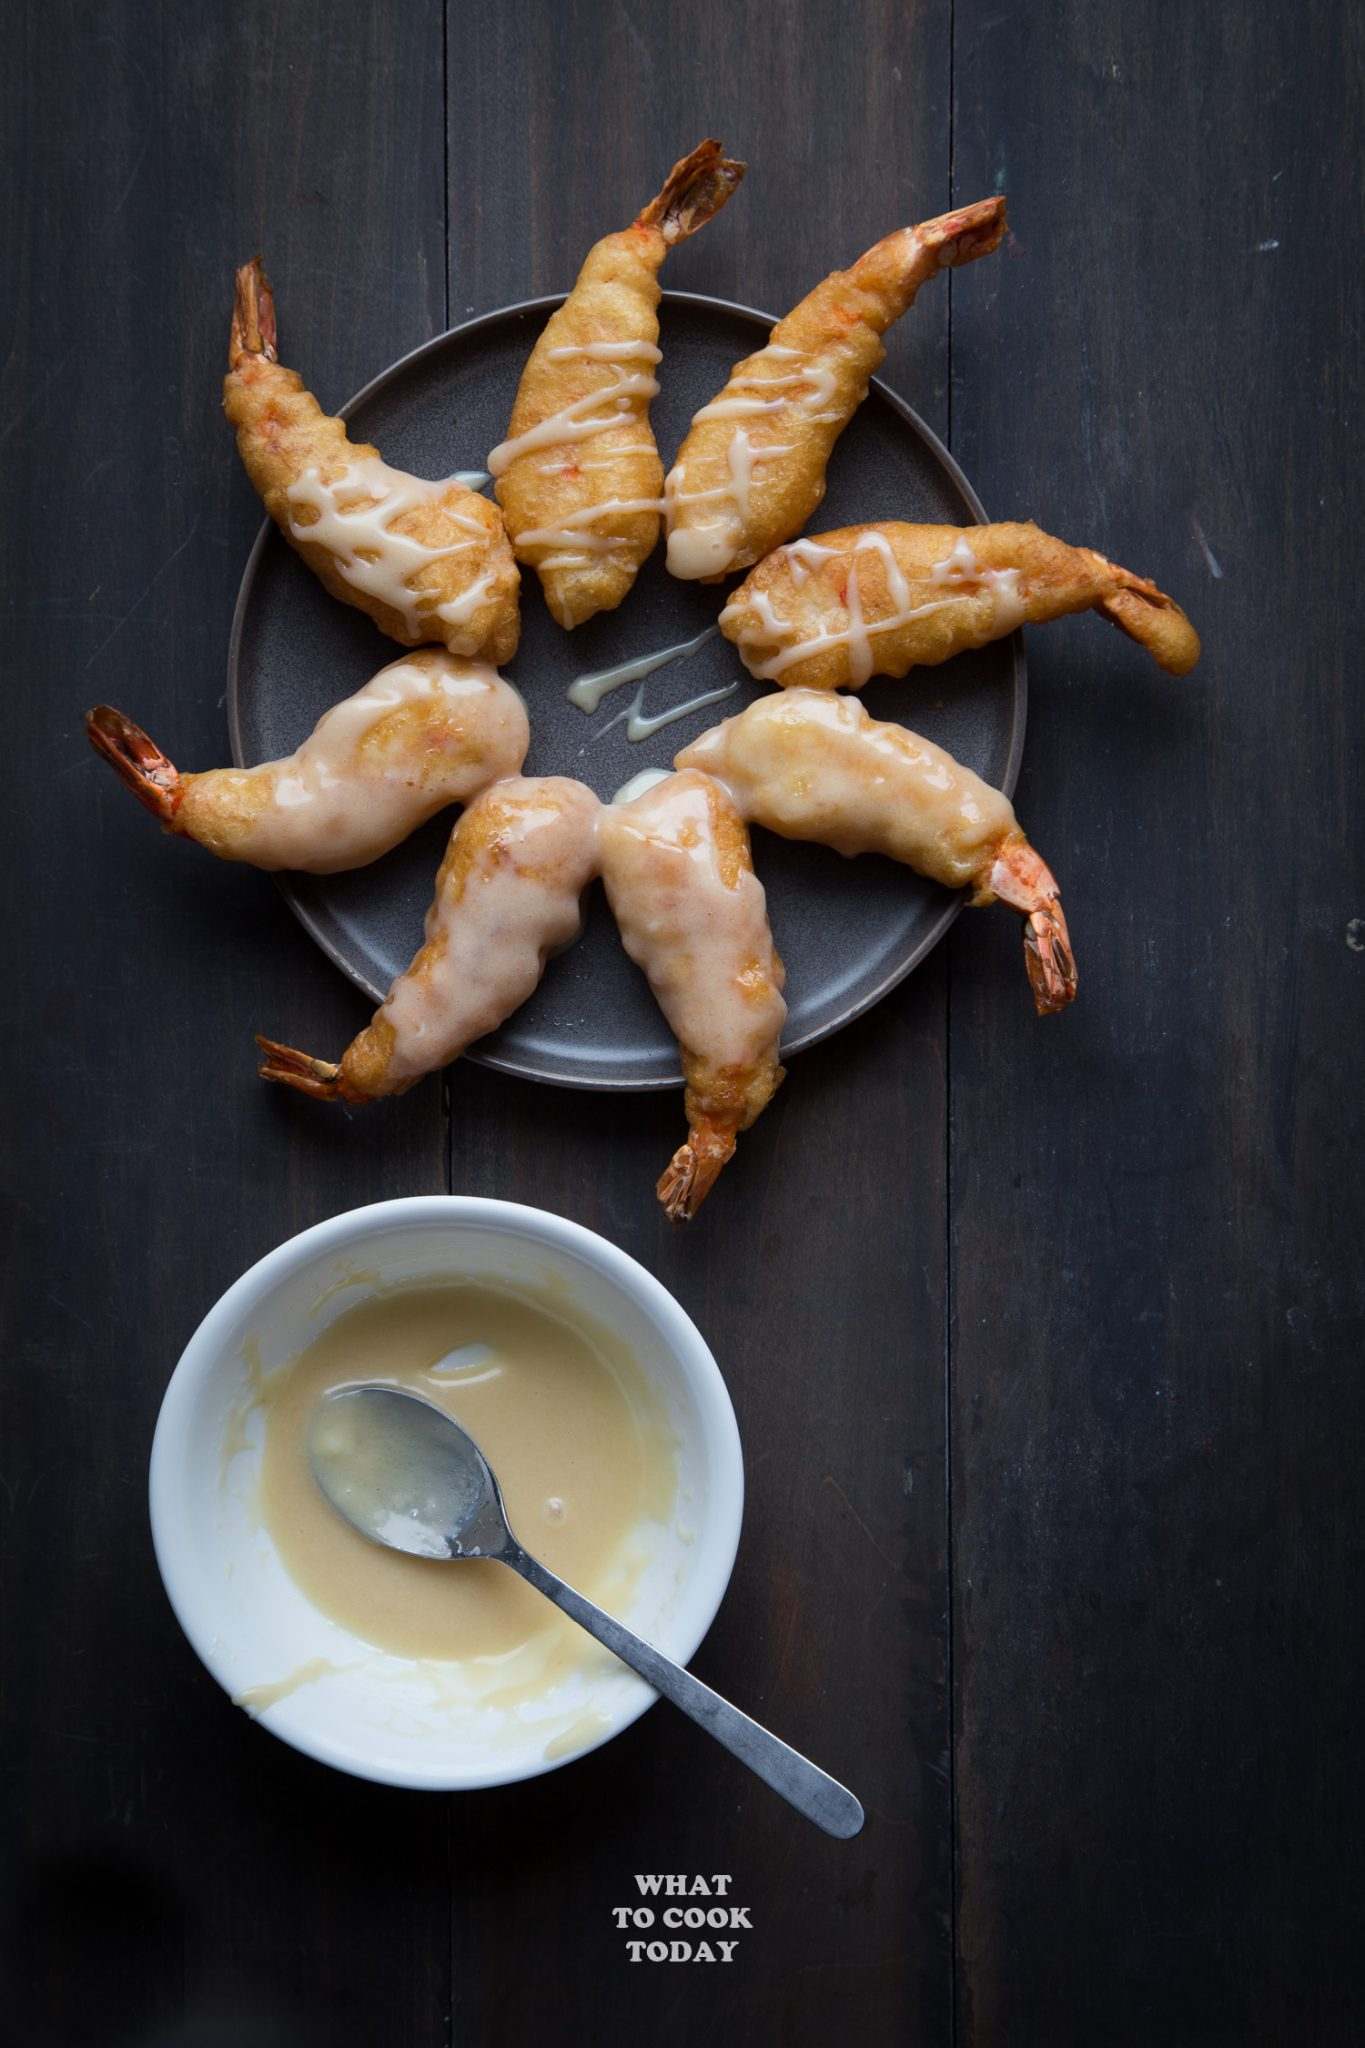 Leng Hong Kien (Mayonaise Udang / Sweet Mayonnaise Shrimp)#lenghongkien #prawn #shrimp #mayonnaise #appetizer